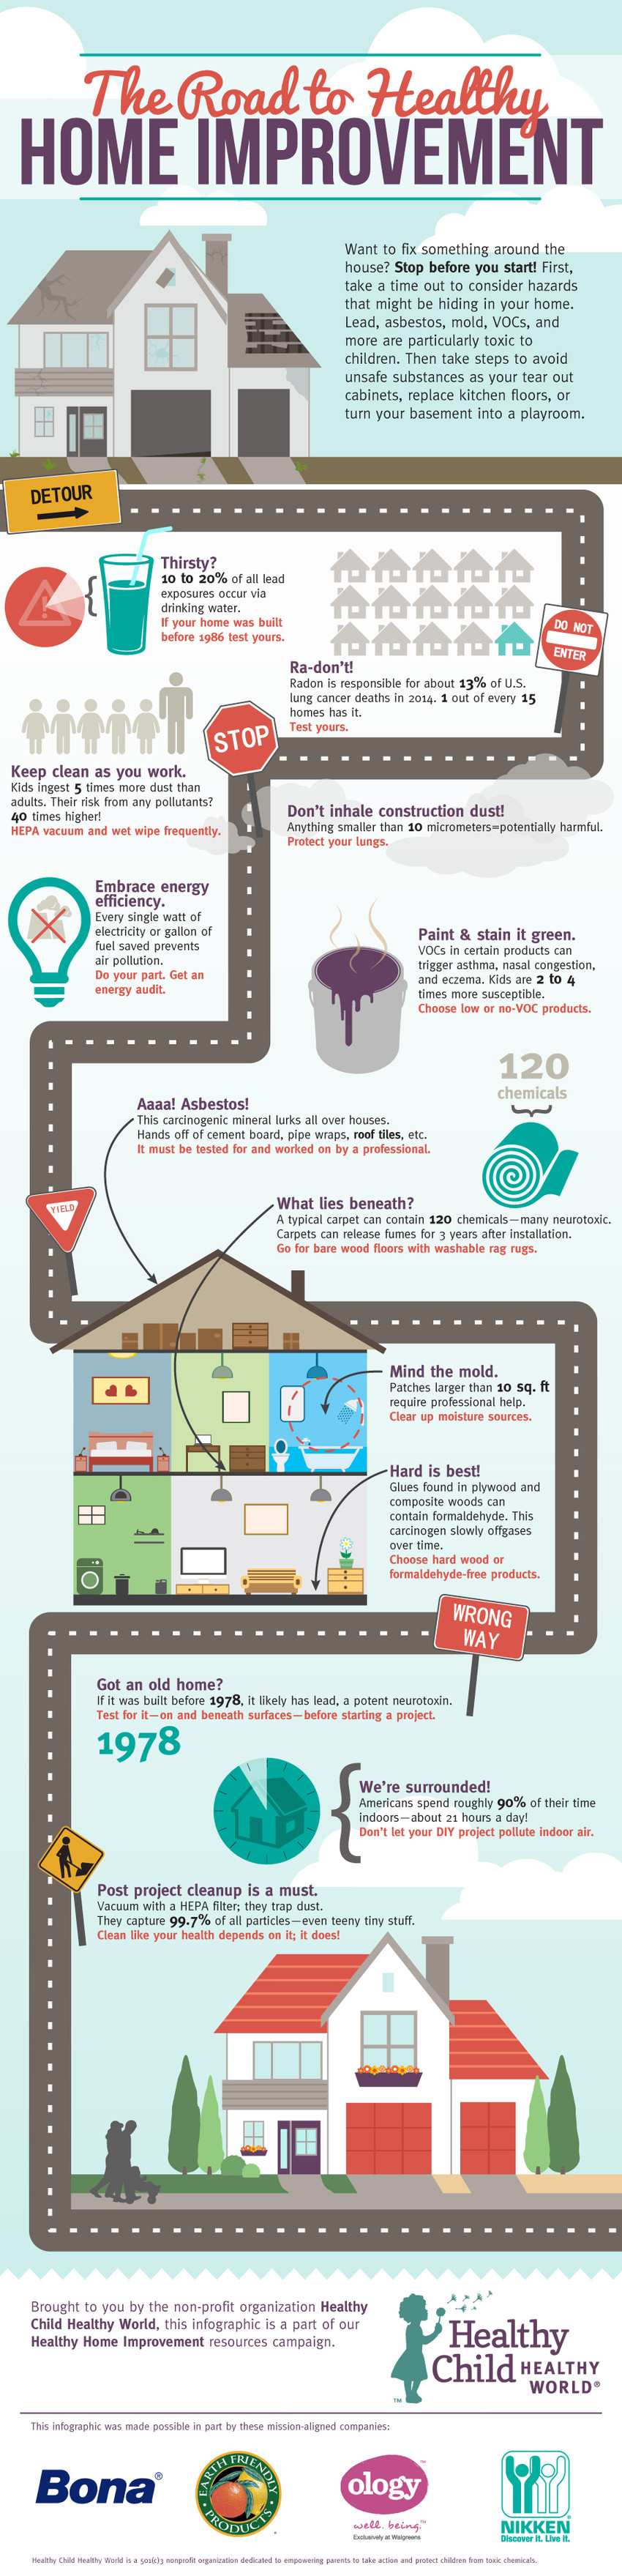 13 Non-Toxic Tips When Renovating Home Infographic